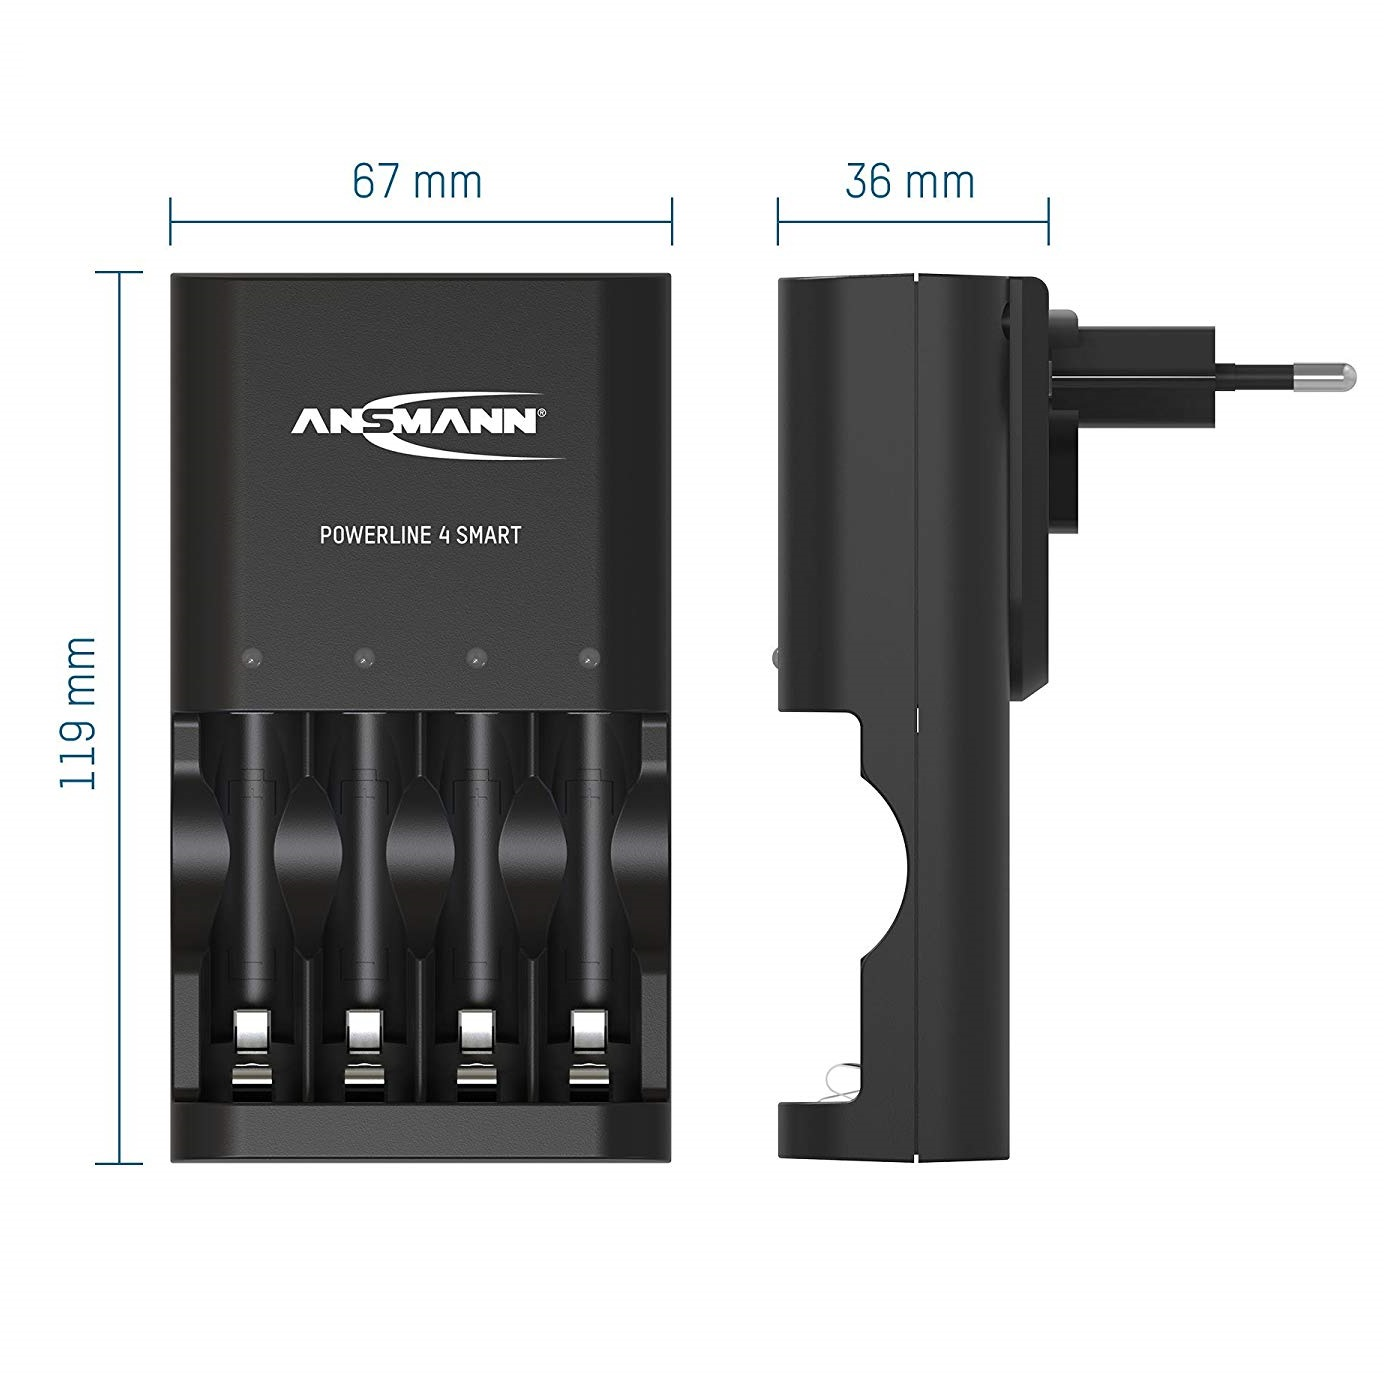 ANSMANN Bộ sạc Pin POWERLINE 4 Smart - 1001-0049